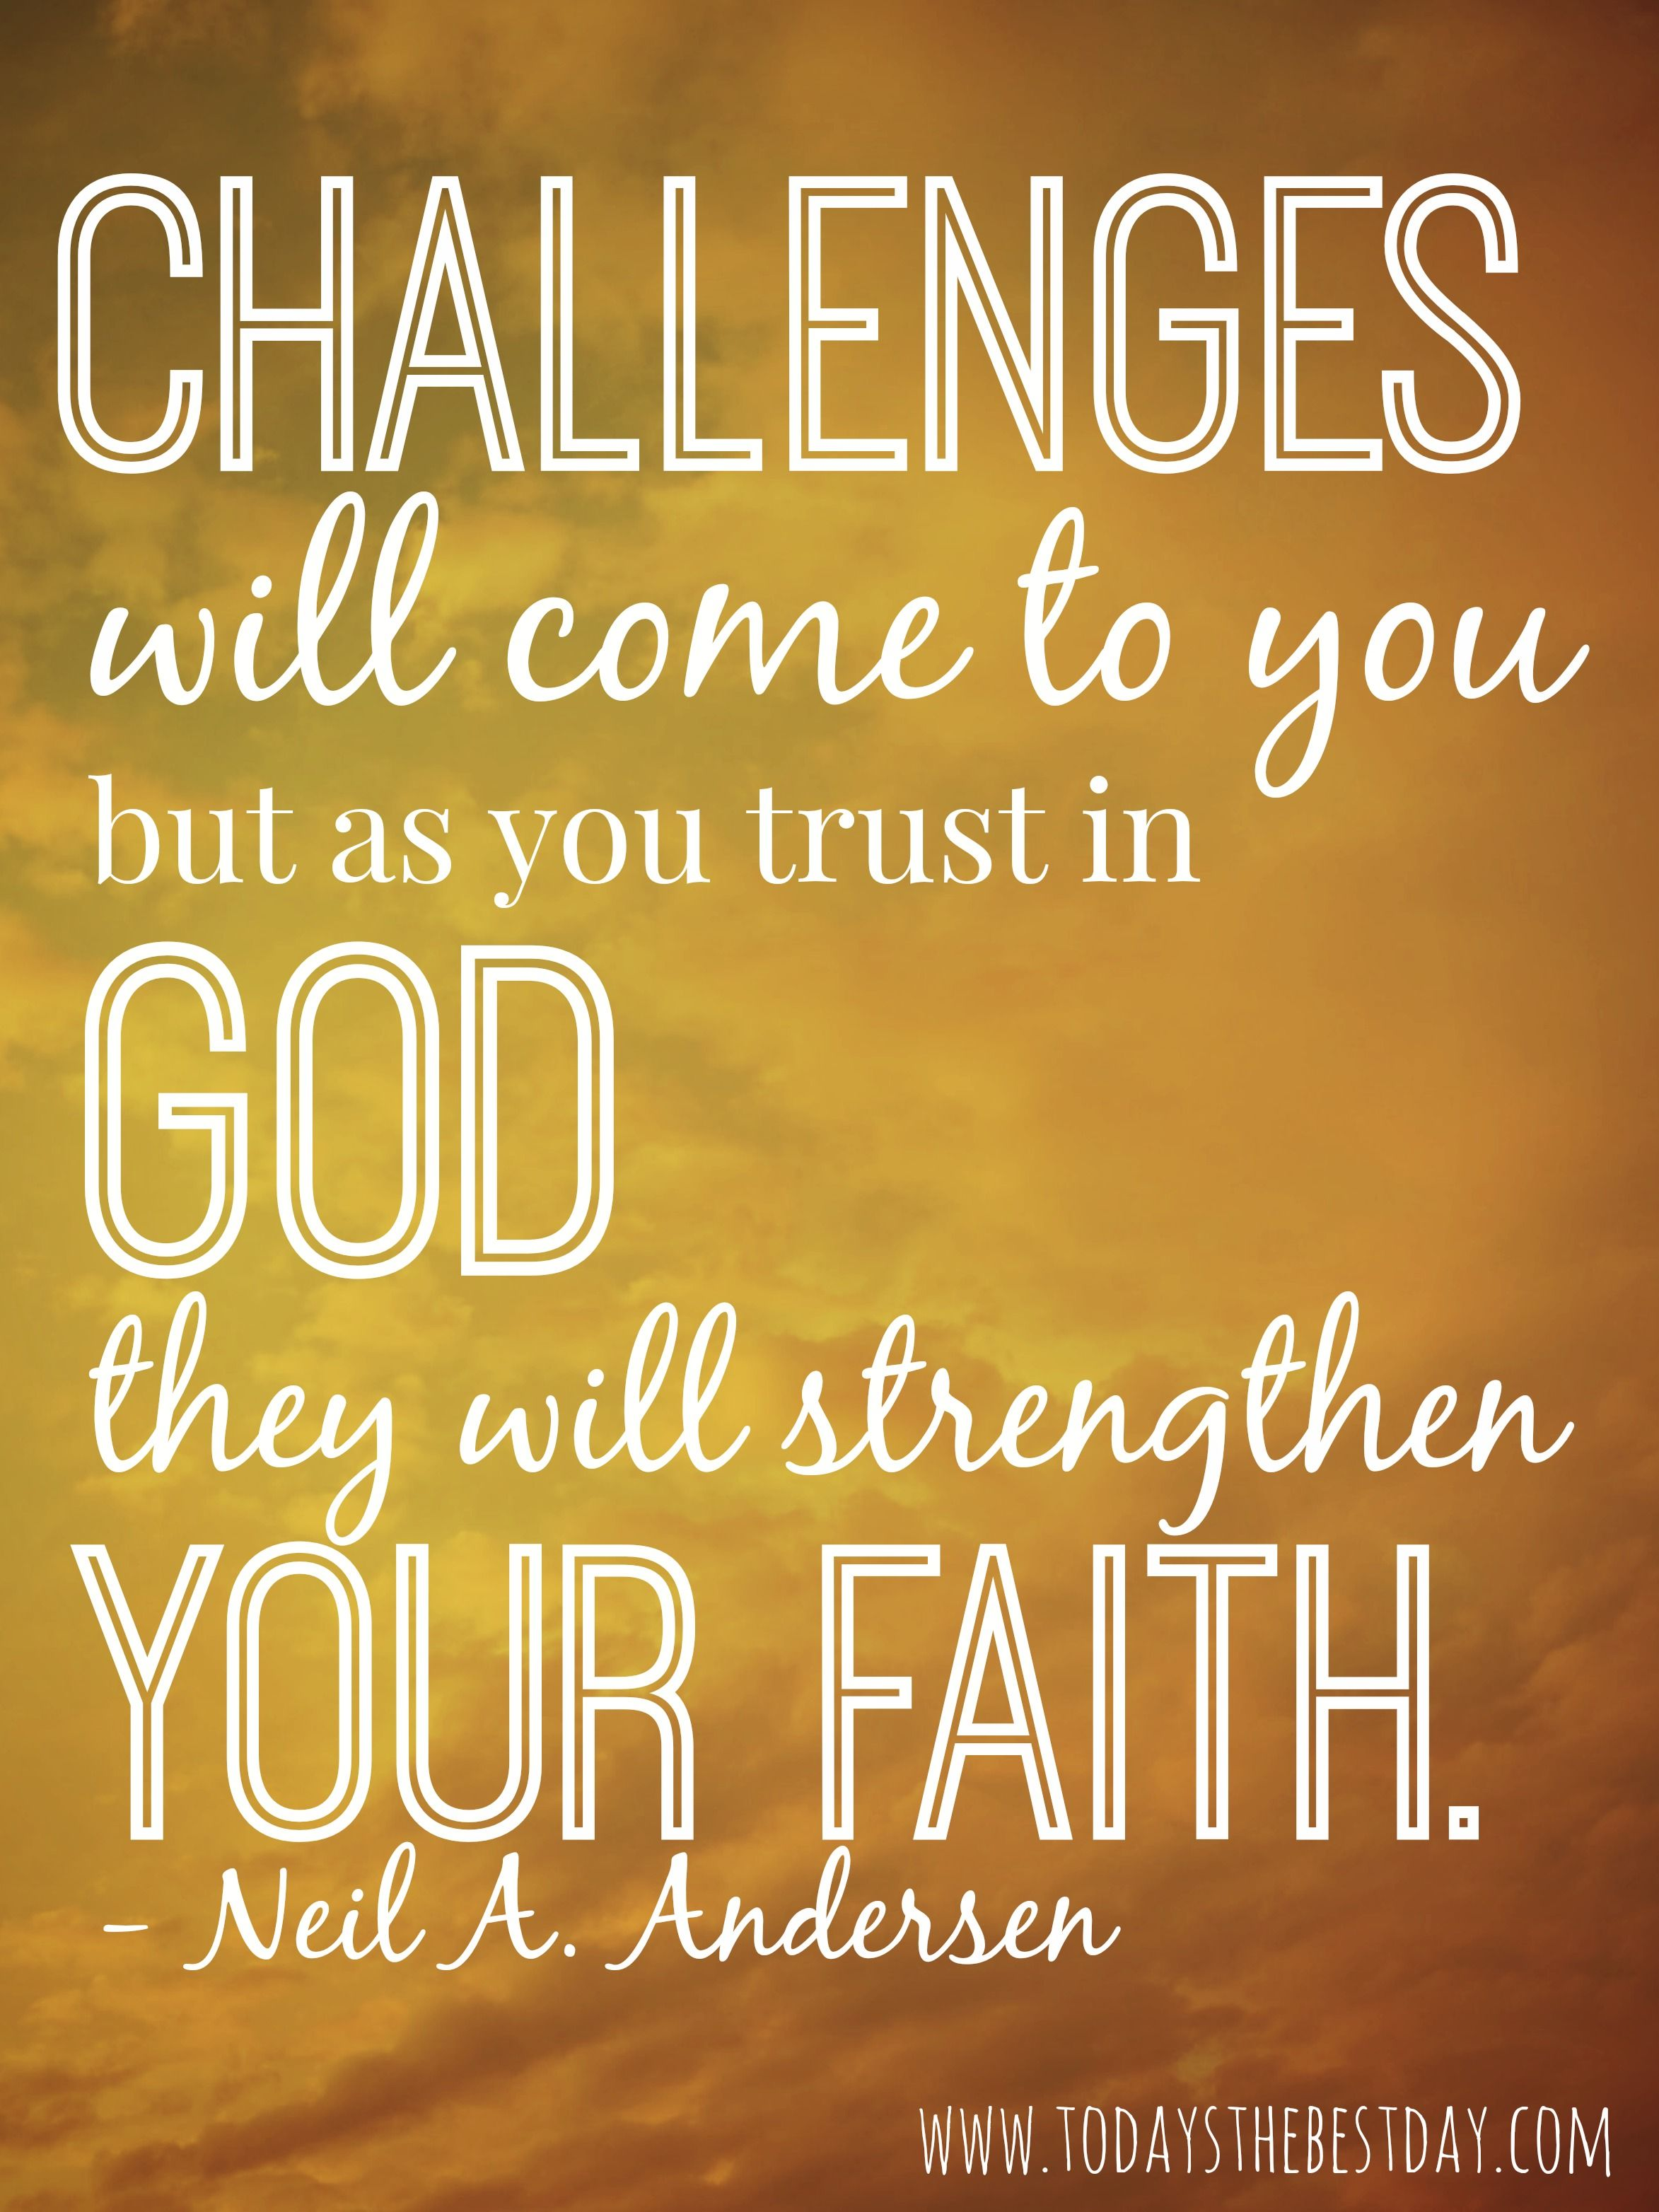 Lds Quotes On Faith Challenges Will Come To You But As You Trust In God They Will